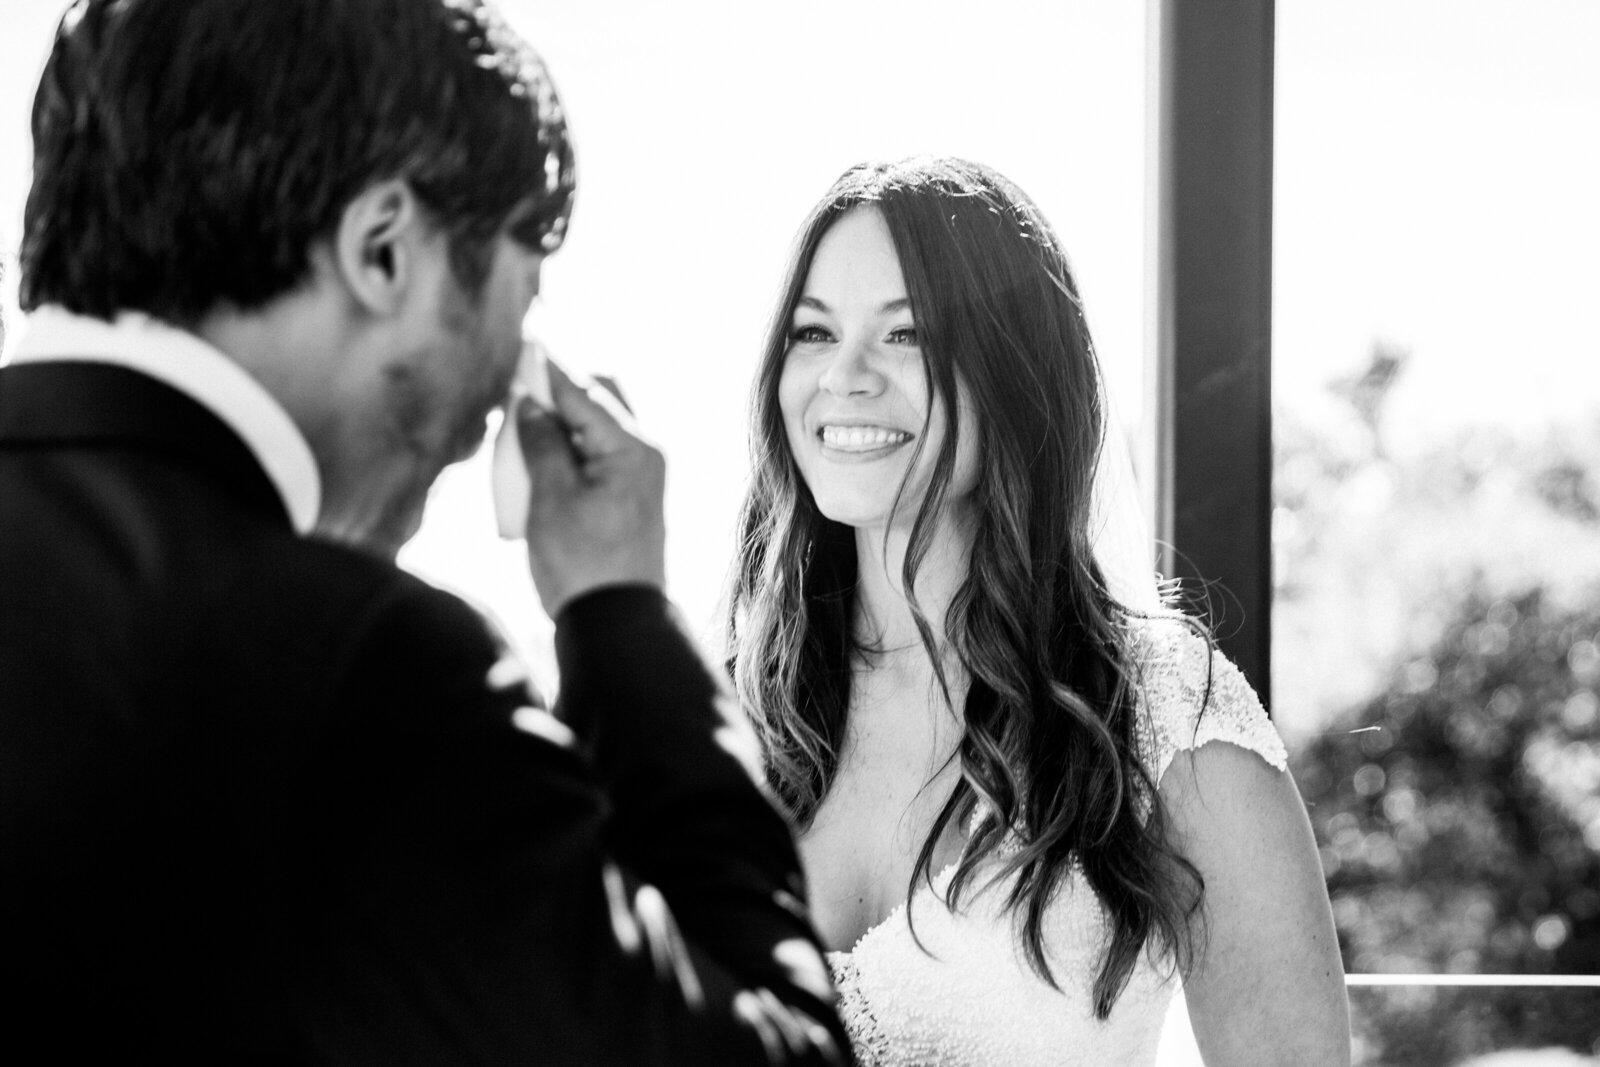 larissa-cleveland-elope-eleopement-intimate-wedding-photographer-san-francisco-napa-carmel-049